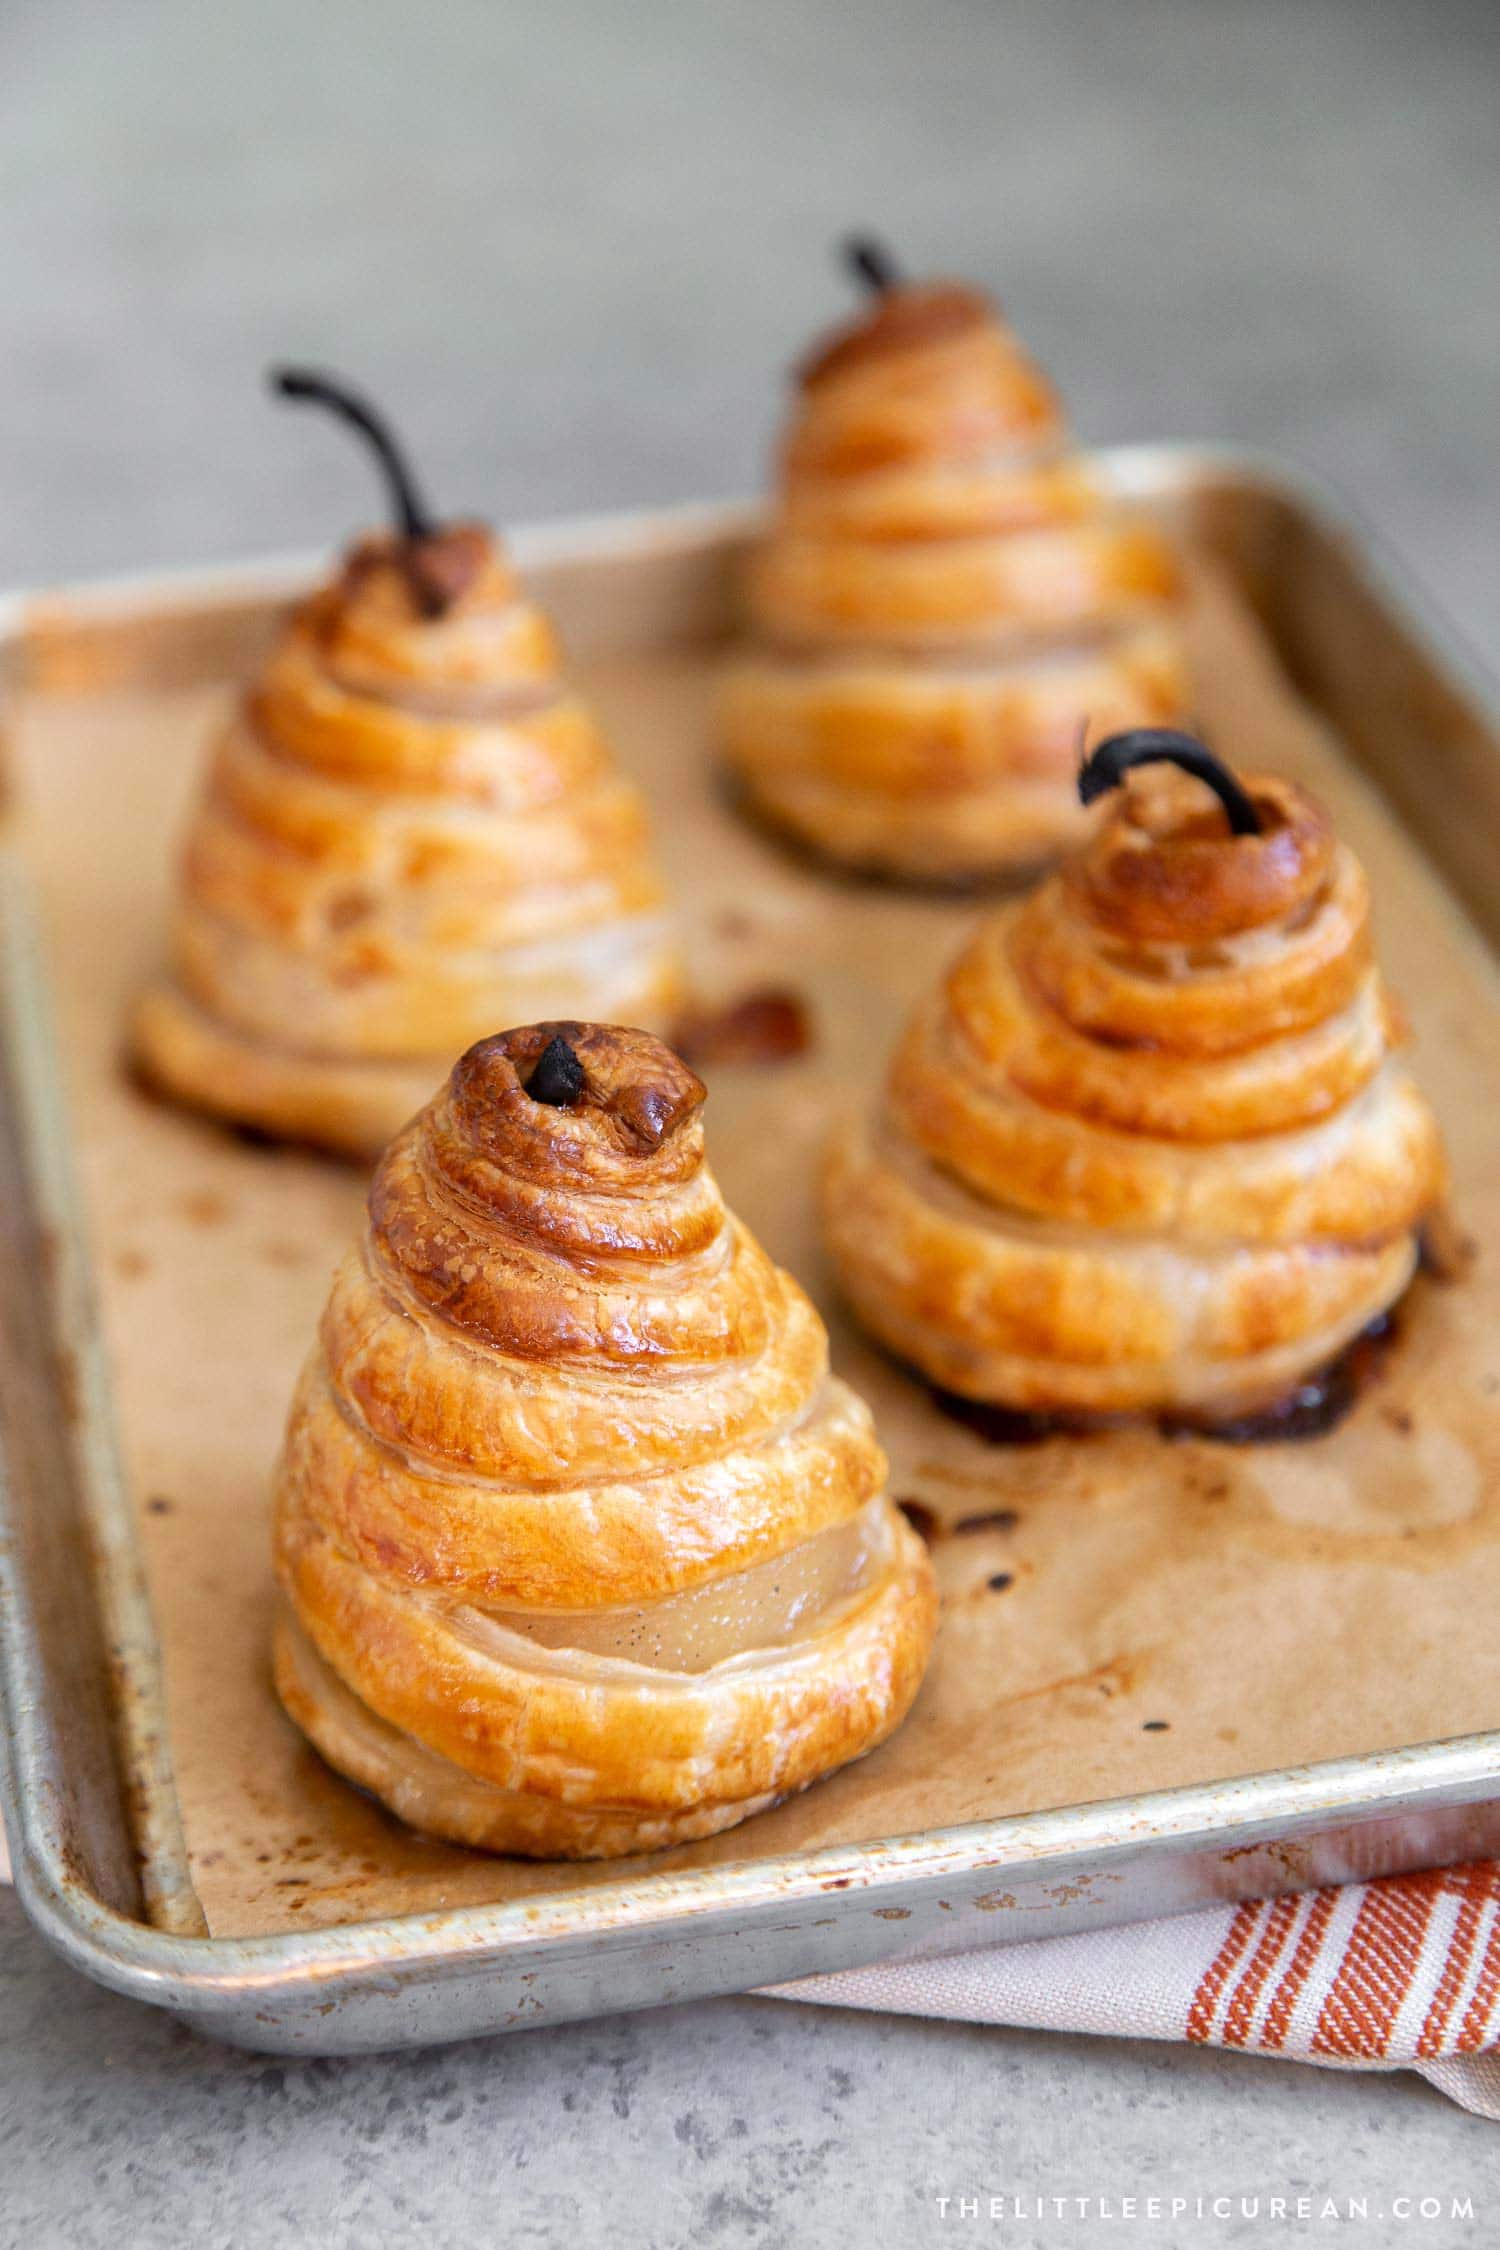 Poached pears baked in puff pastry.